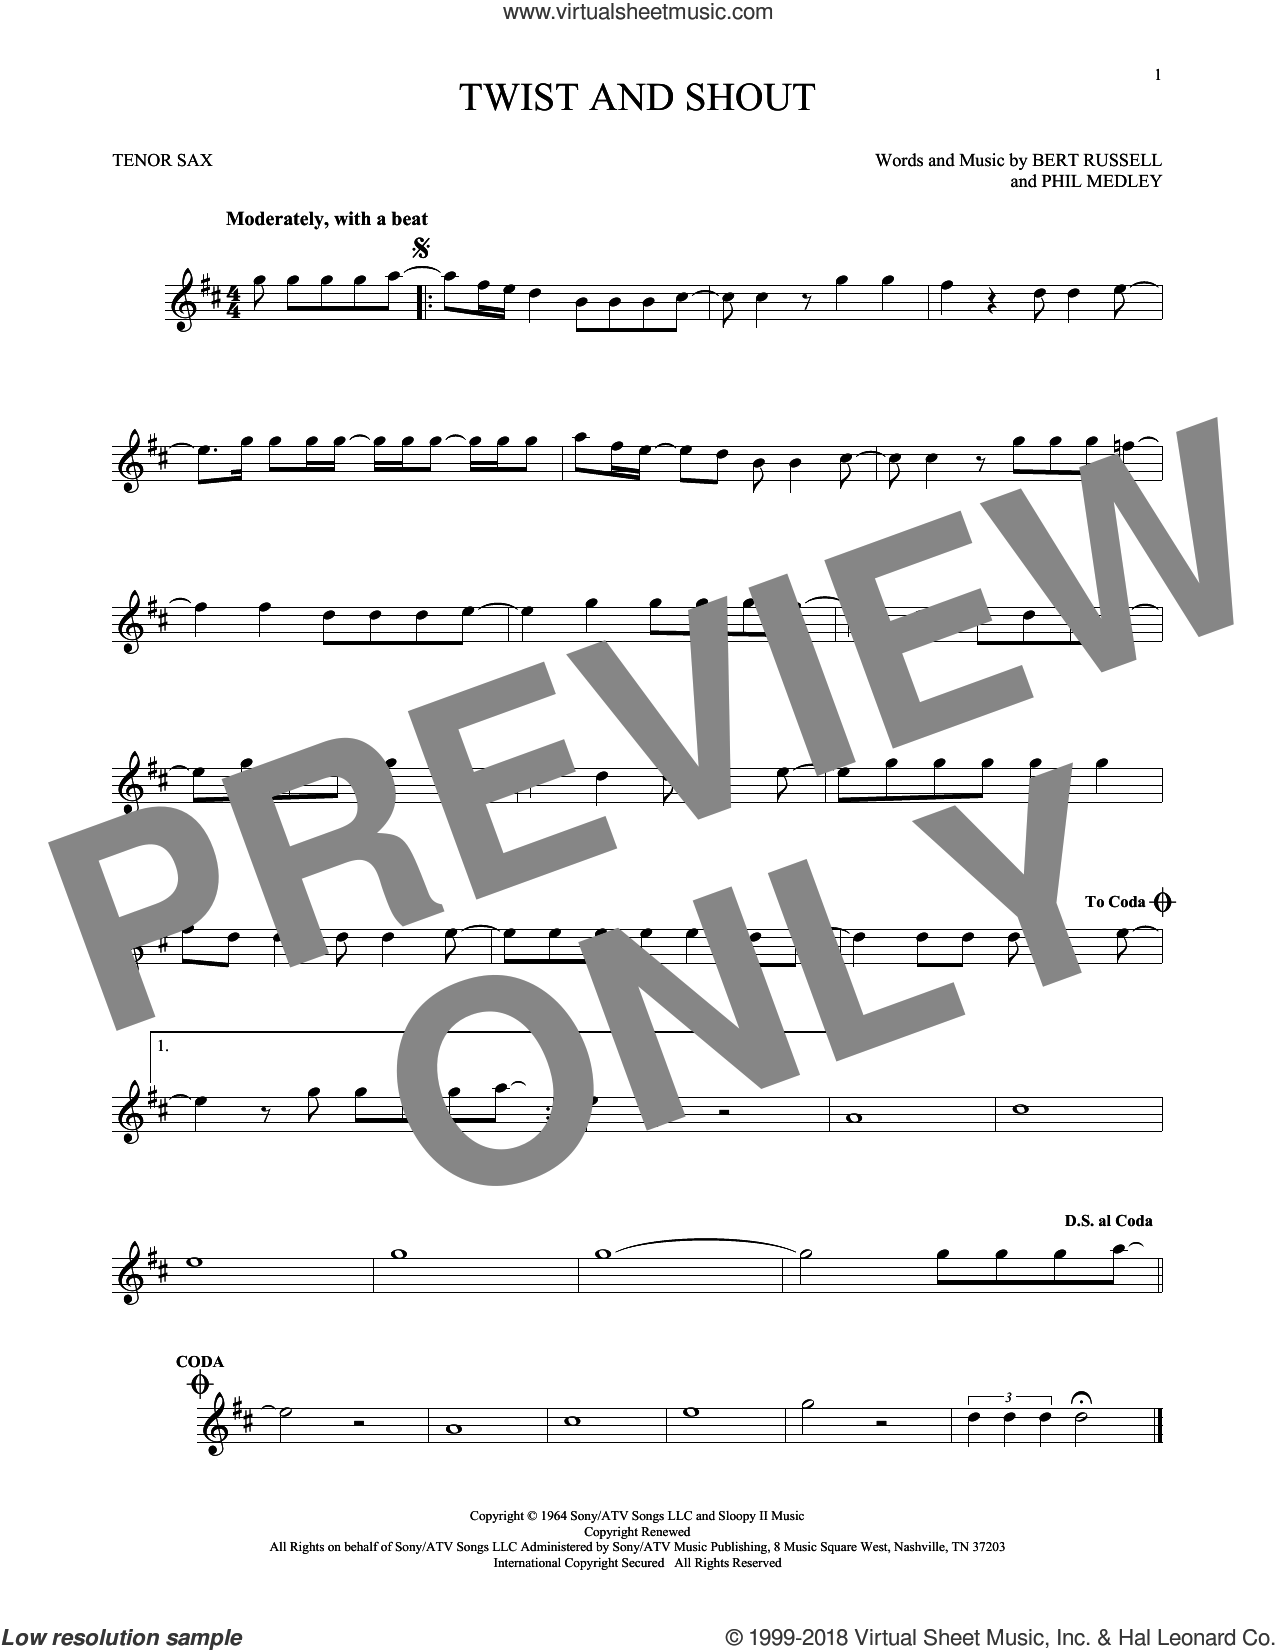 Twist And Shout sheet music for tenor saxophone solo by Phil Medley, The Beatles, The Isley Brothers and Bert Russell. Score Image Preview.